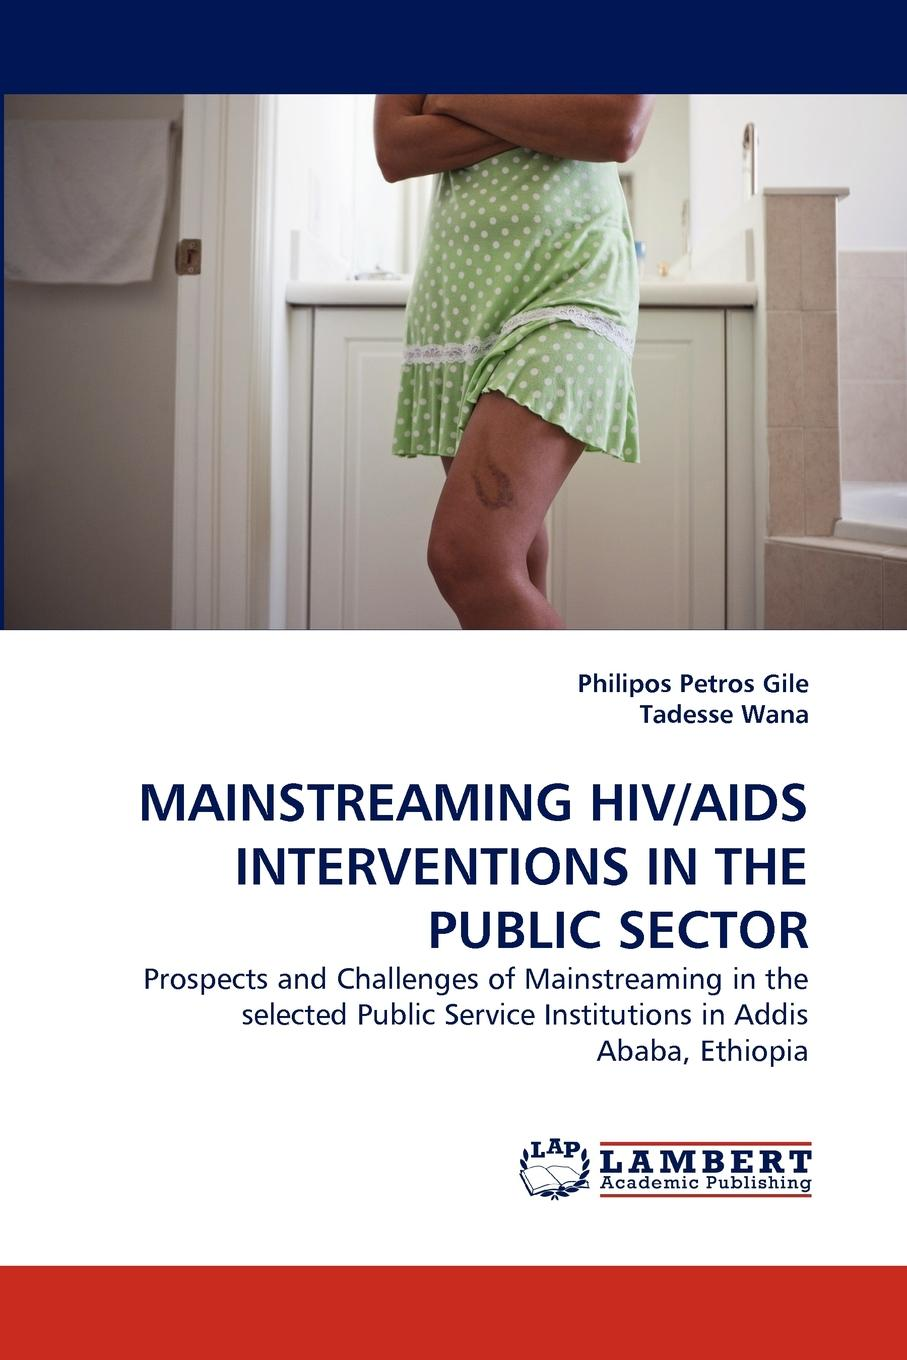 Philipos Petros Gile, Tadesse Wana MAINSTREAMING HIV/AIDS INTERVENTIONS IN THE PUBLIC SECTOR недорго, оригинальная цена